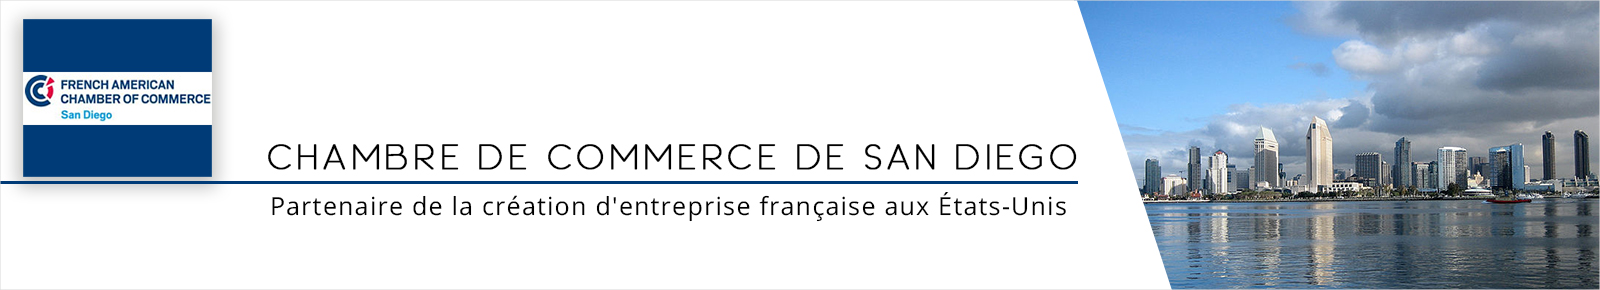 Chambre de commerce de San Diego | French American Chamber of Commerce